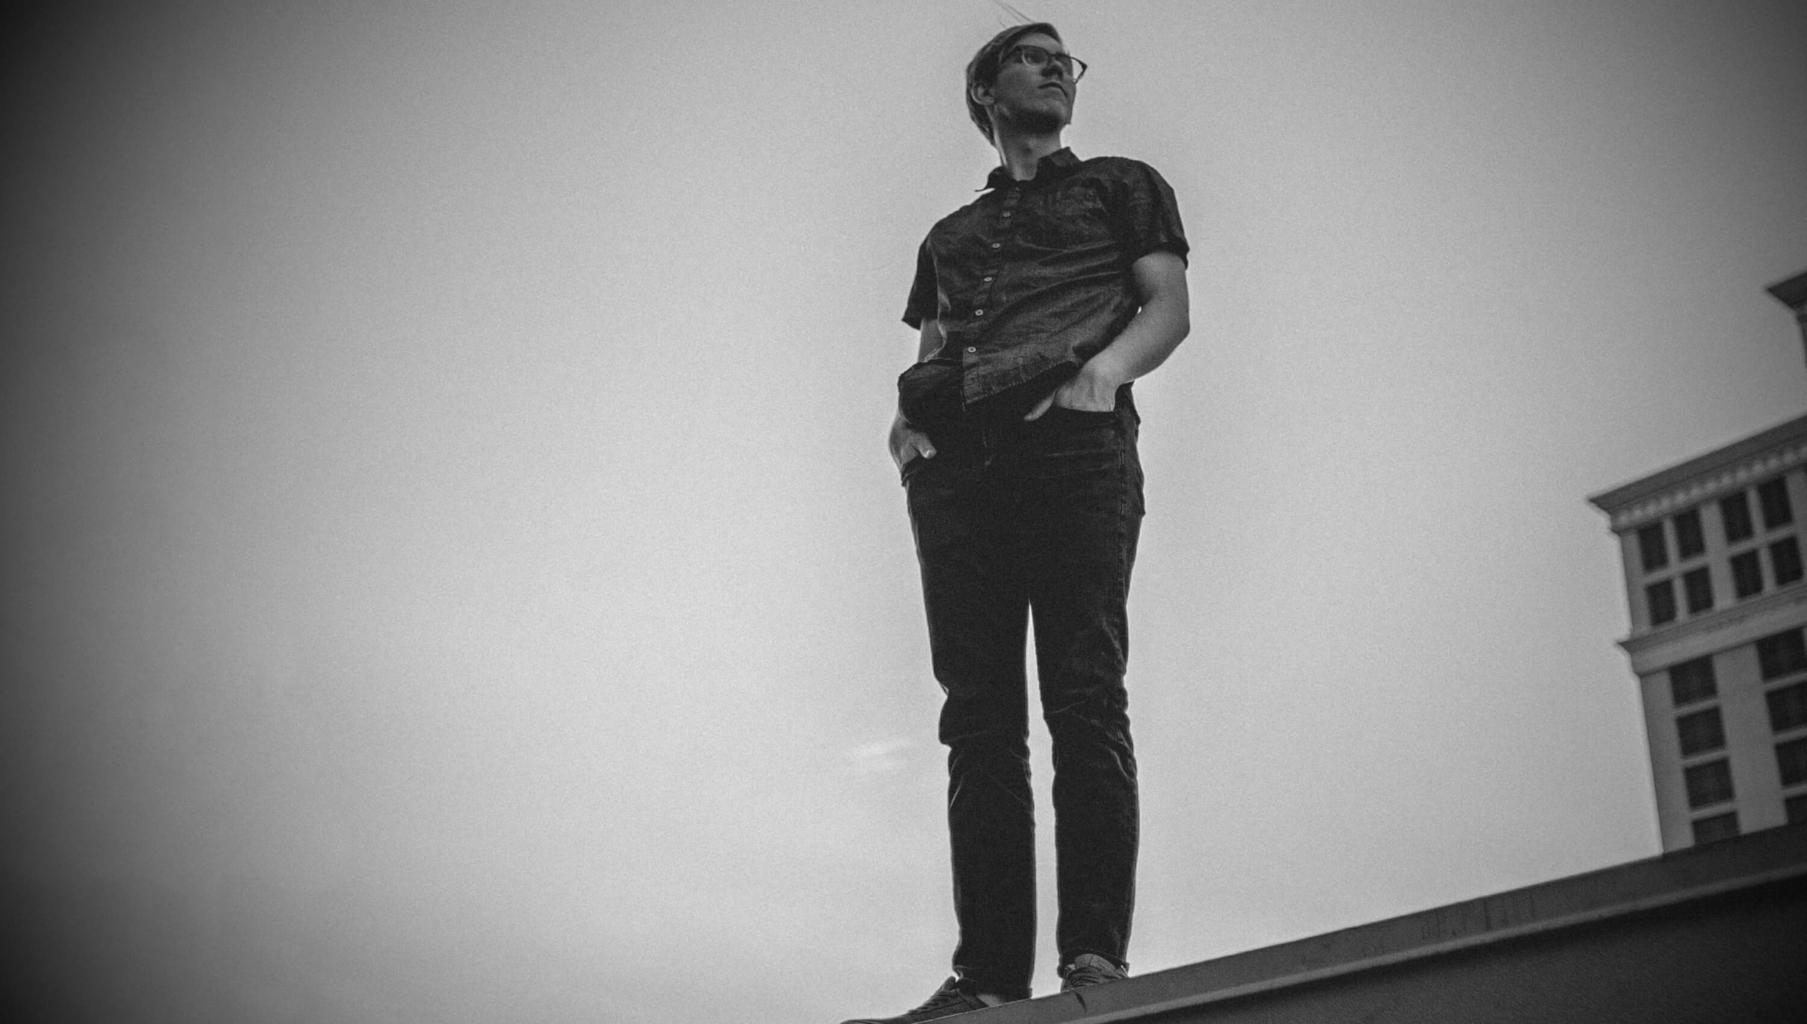 Man on a rooftop, looking back. A slightly adapted photo from Analise Benevides on Unsplash.